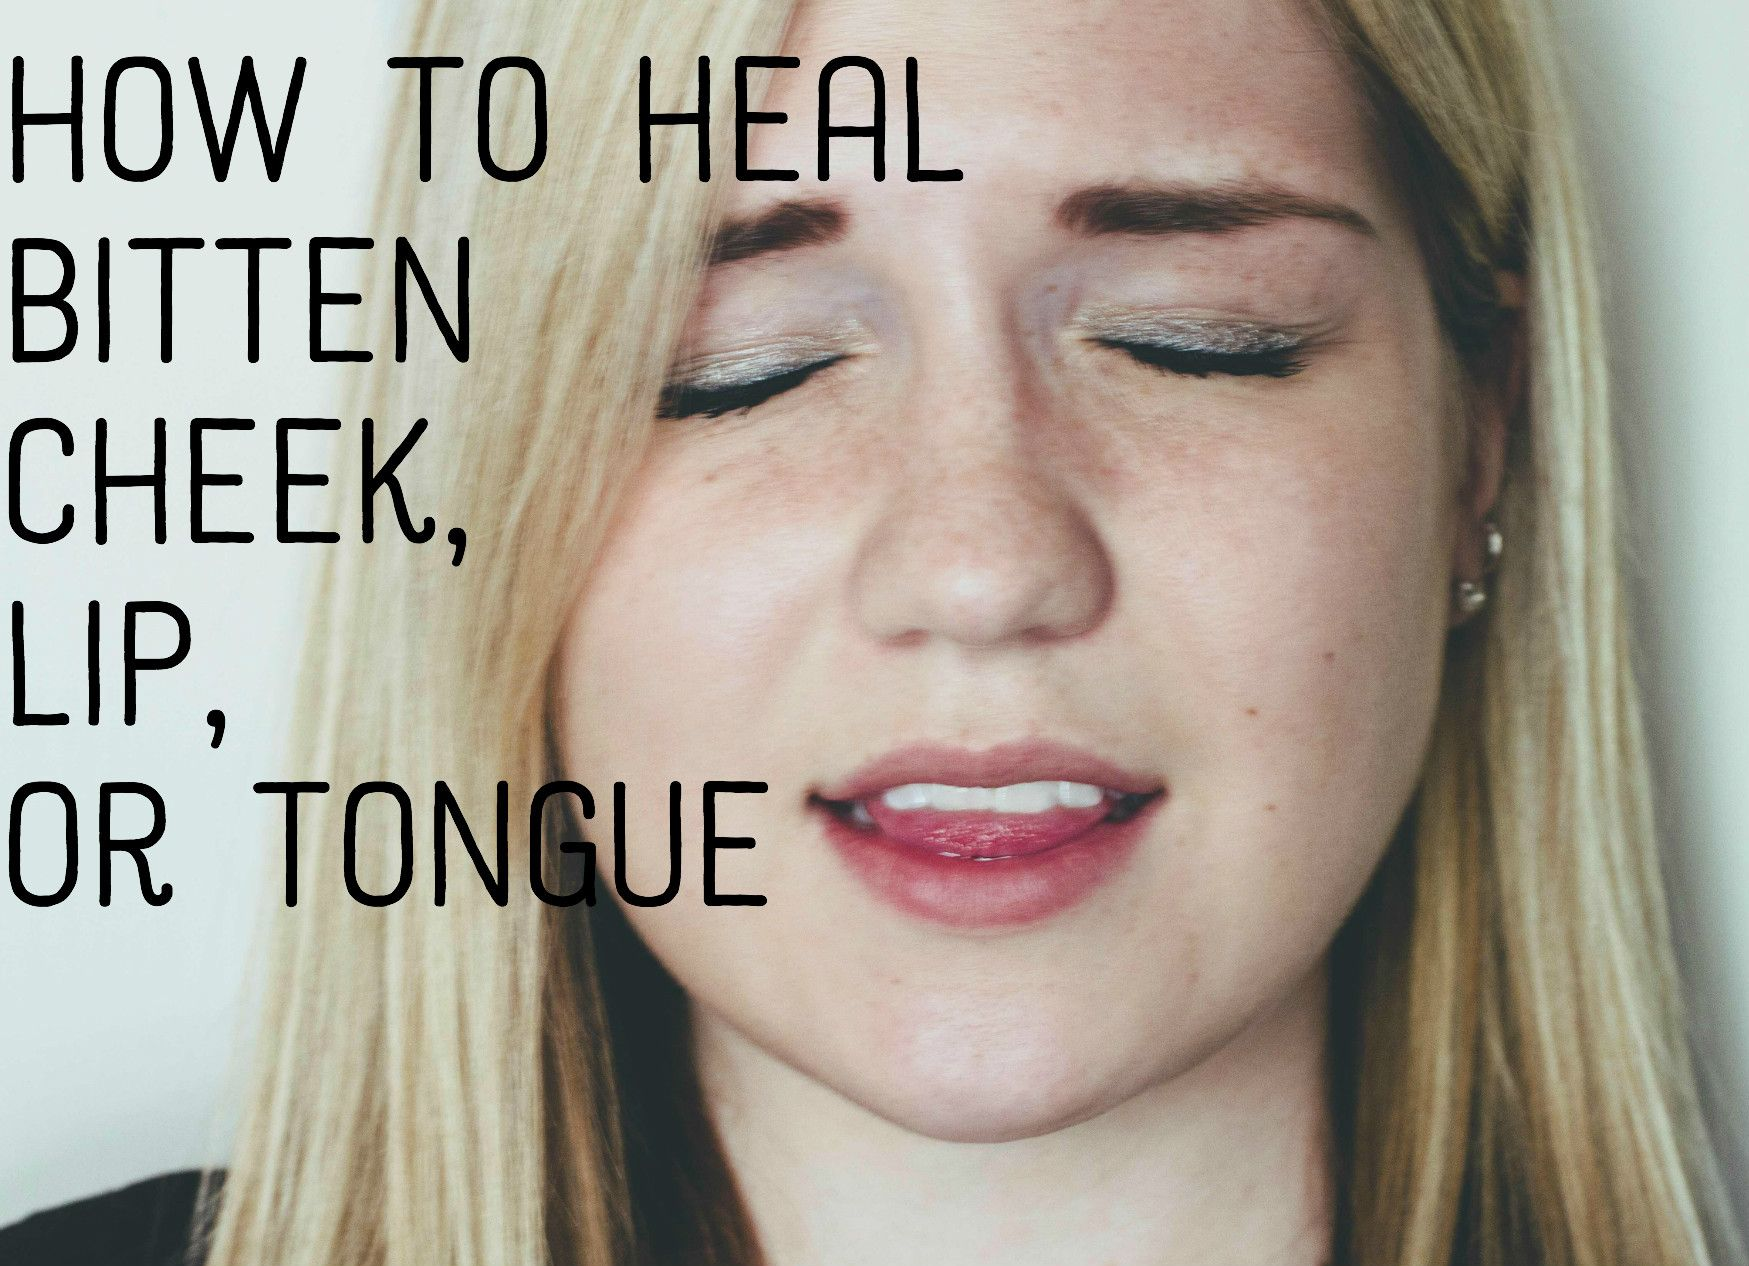 How To Treat And Heal A Bitten Tongue Lip Or Cheek Blister On Lip Lip Healing Blister On Tongue